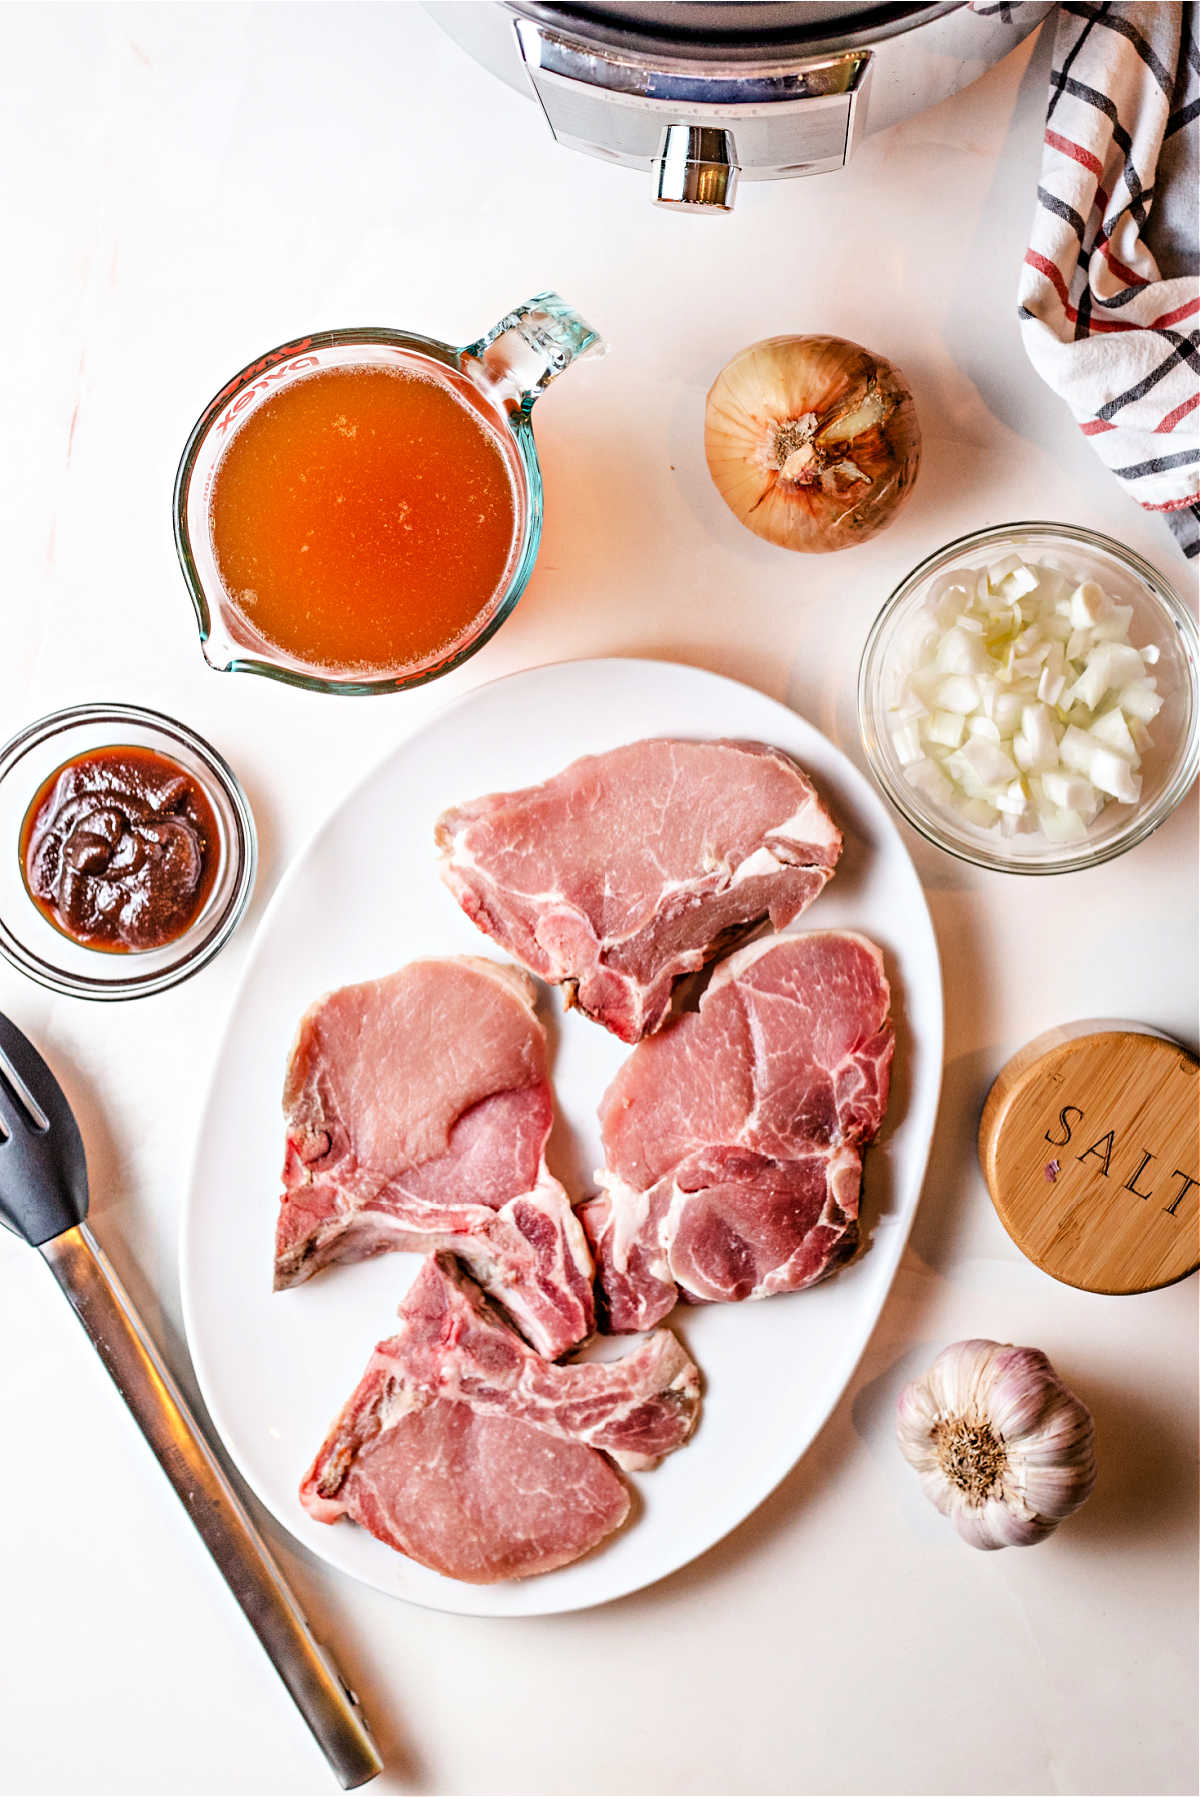 ingredients for instant pot pork chops on a counter: pork chops, apple butter, chicken broth, onion, and garlic.